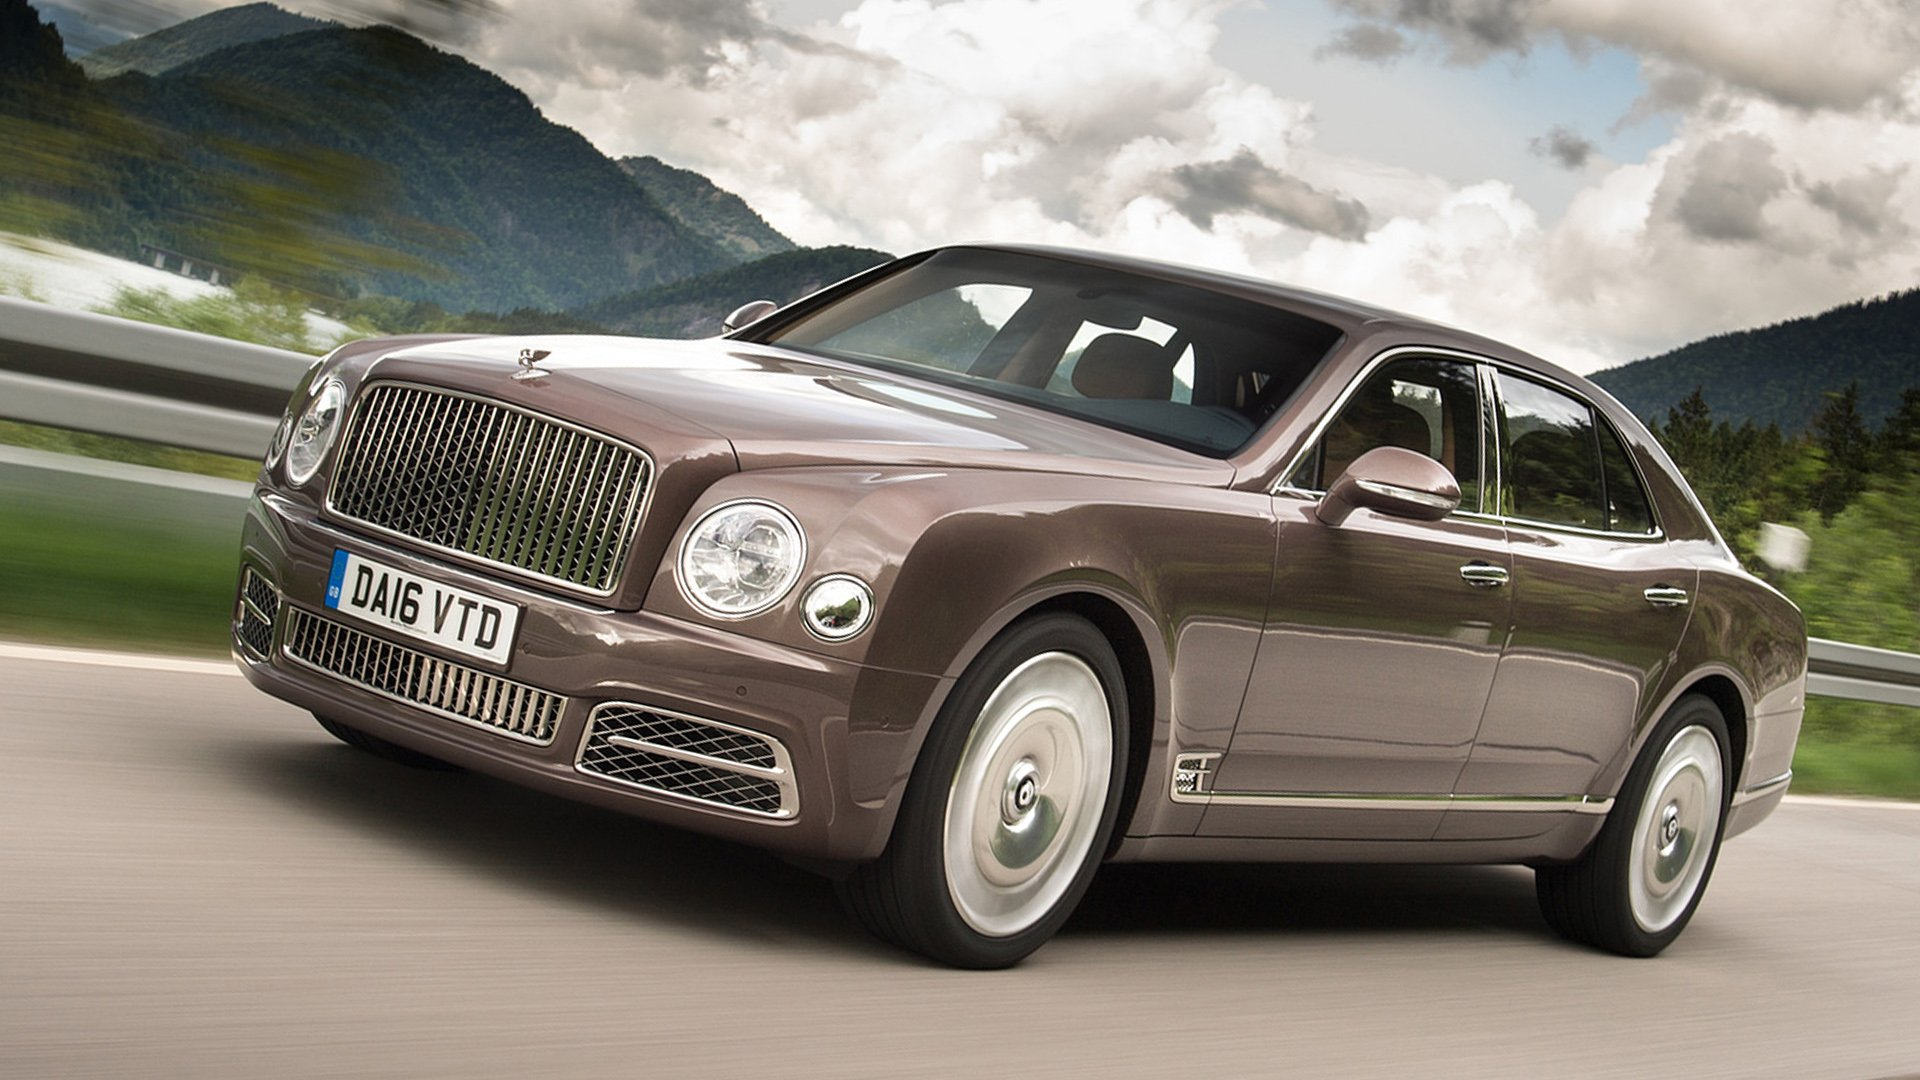 New 2019 Bentley Mulsanne Review